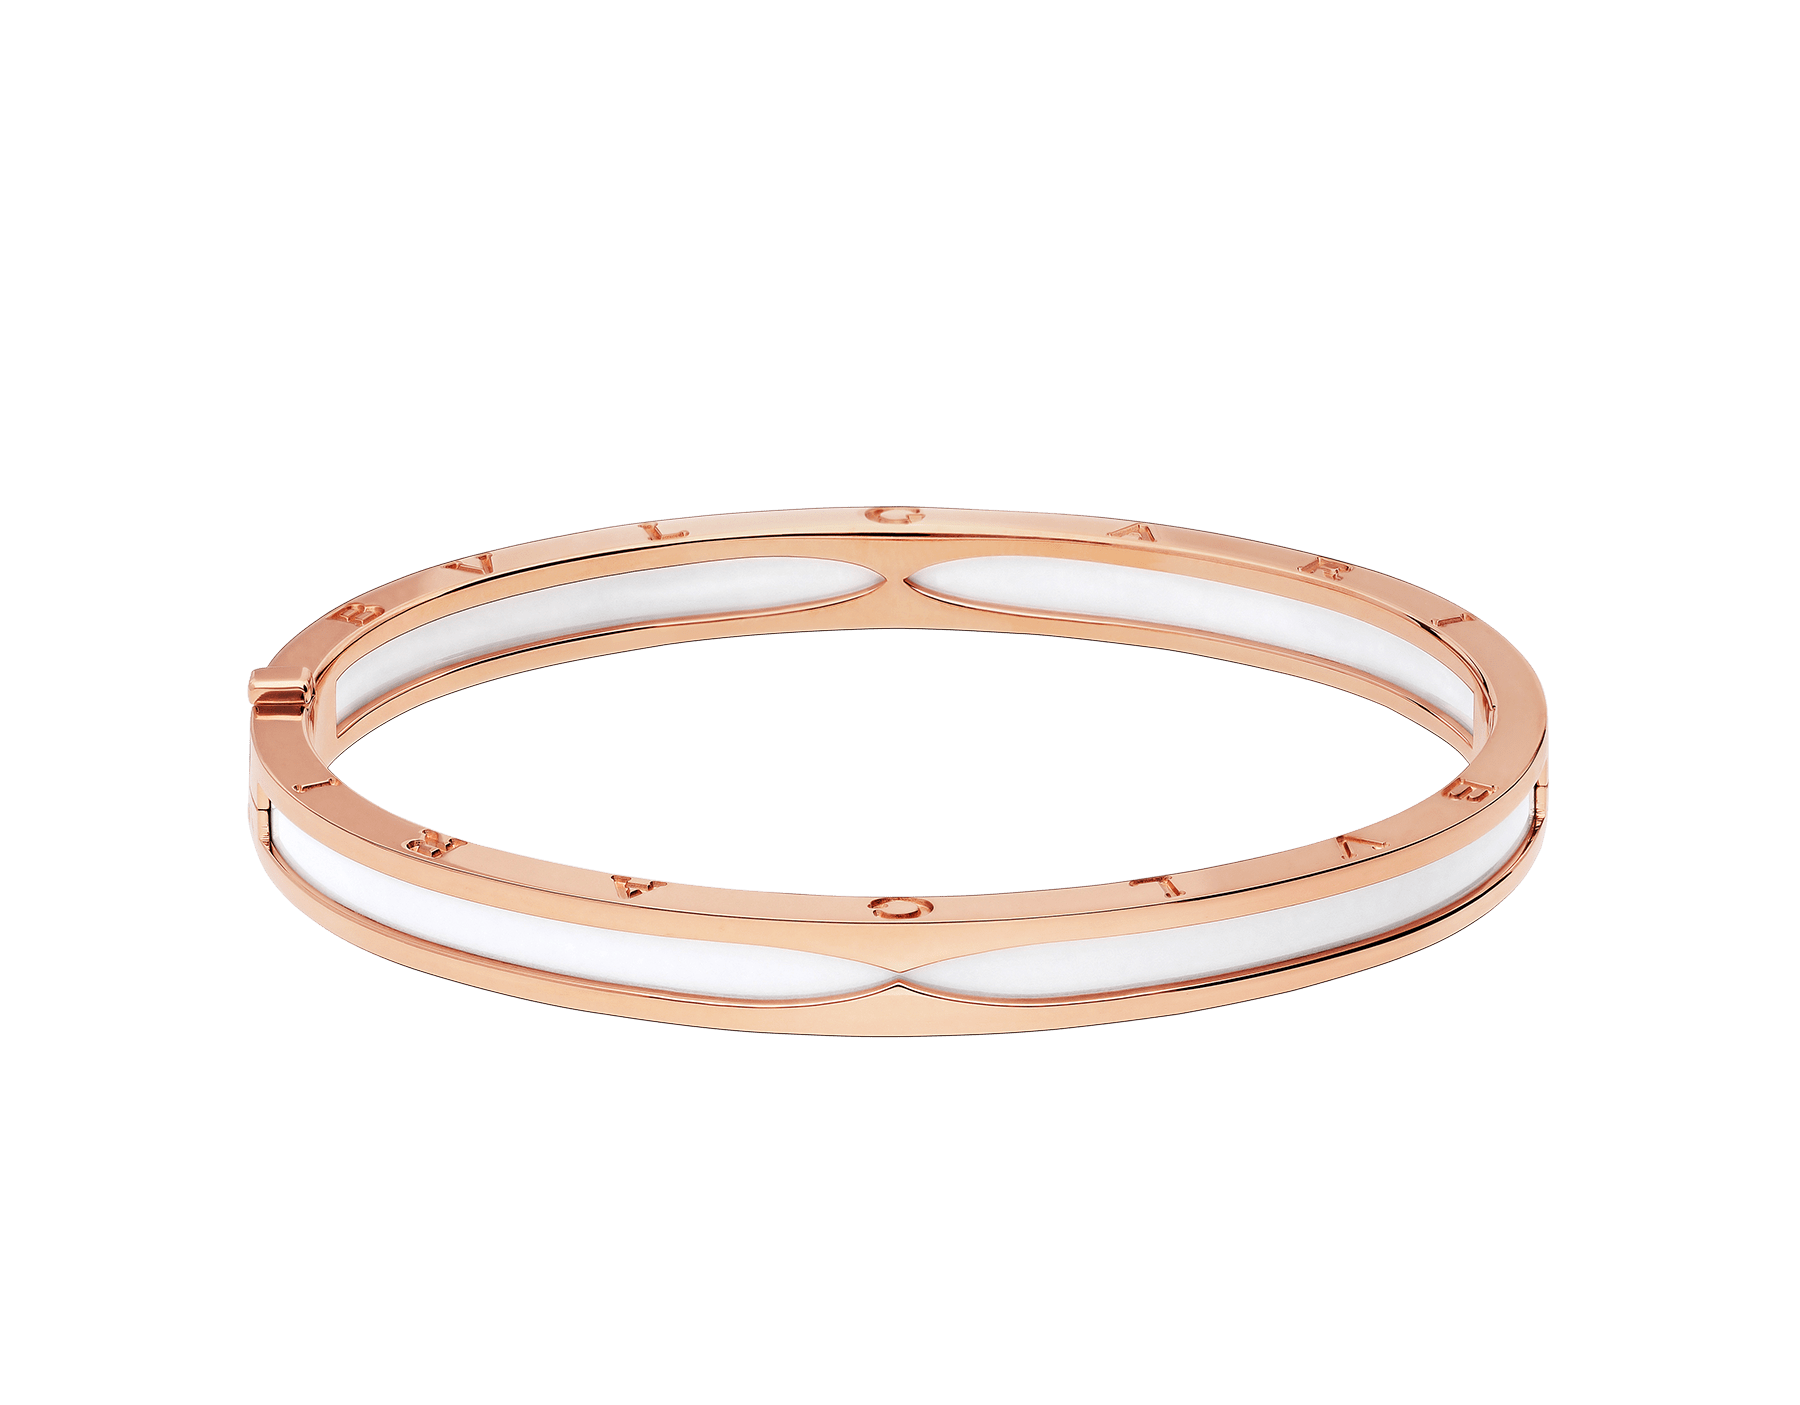 B.zero1 bangle bracelet in 18 kt rose gold with white ceramic. BR857617 image 2